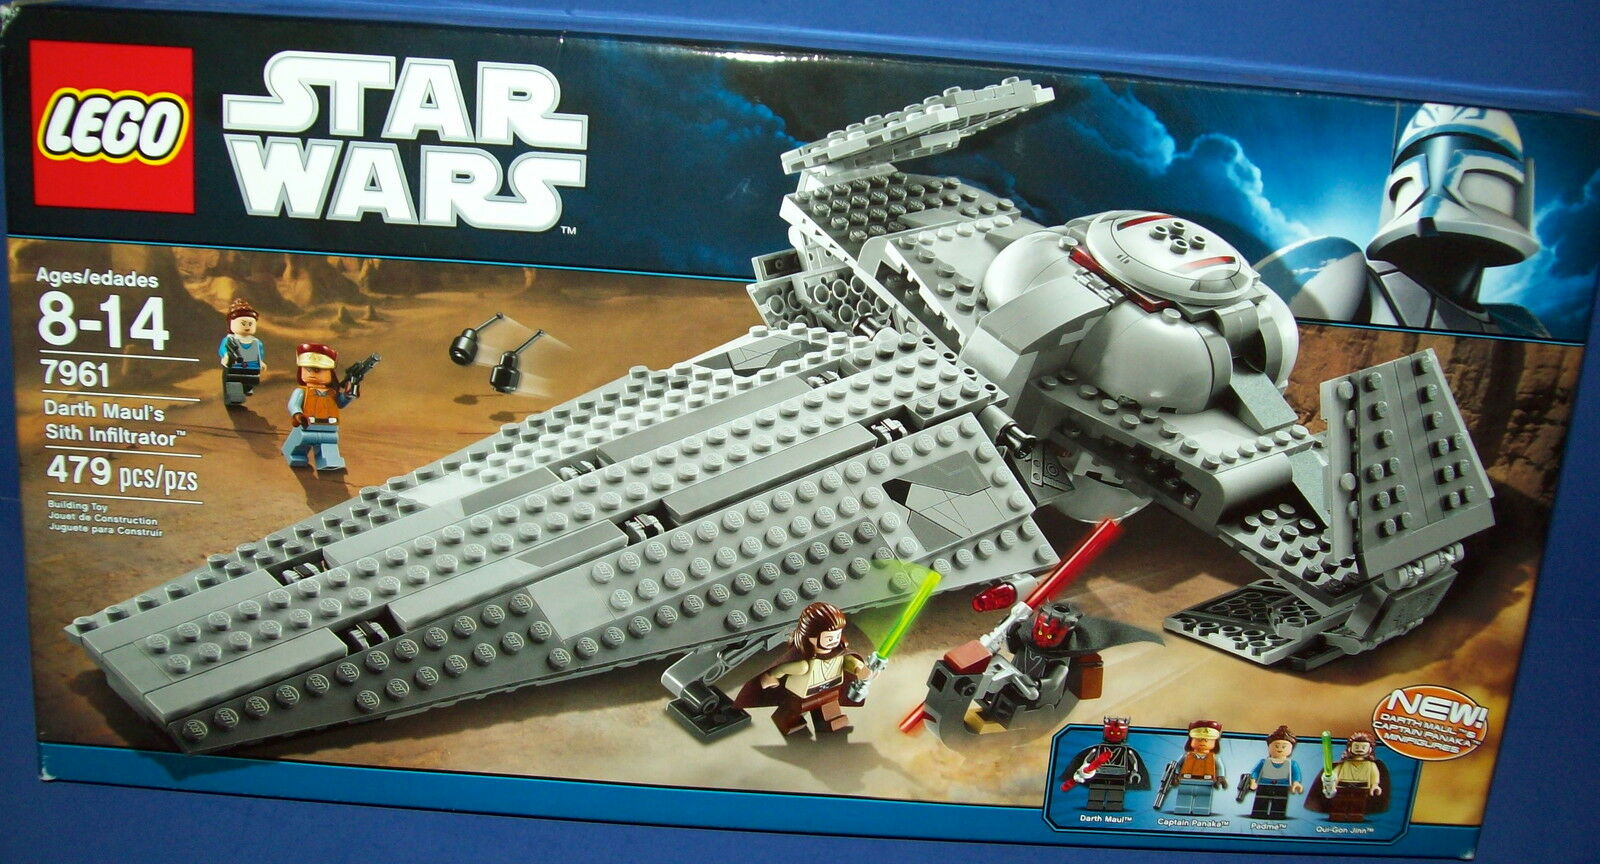 LEGO 7961 DARTH MAUL'S SITH INFILTRATOR star wars RETIROT NEW 479 pcs